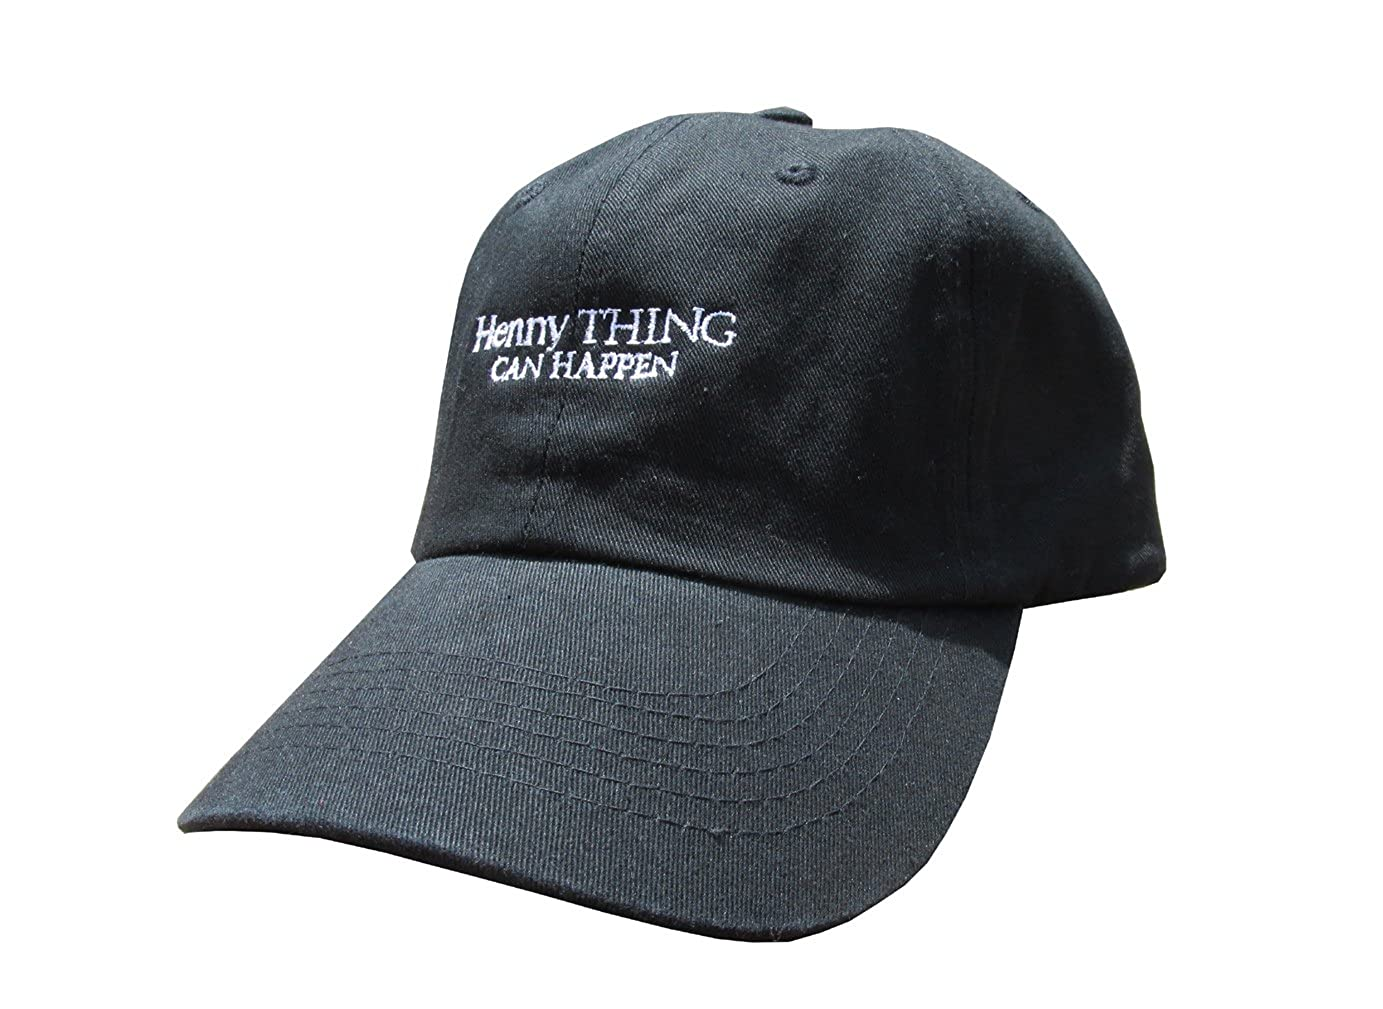 Rob sTees Henny Thing Can Happen Unstructured Twill Cotton Low Profile  Yeezus Meme Dad Hat Cap at Amazon Men s Clothing store  cea40bab5123